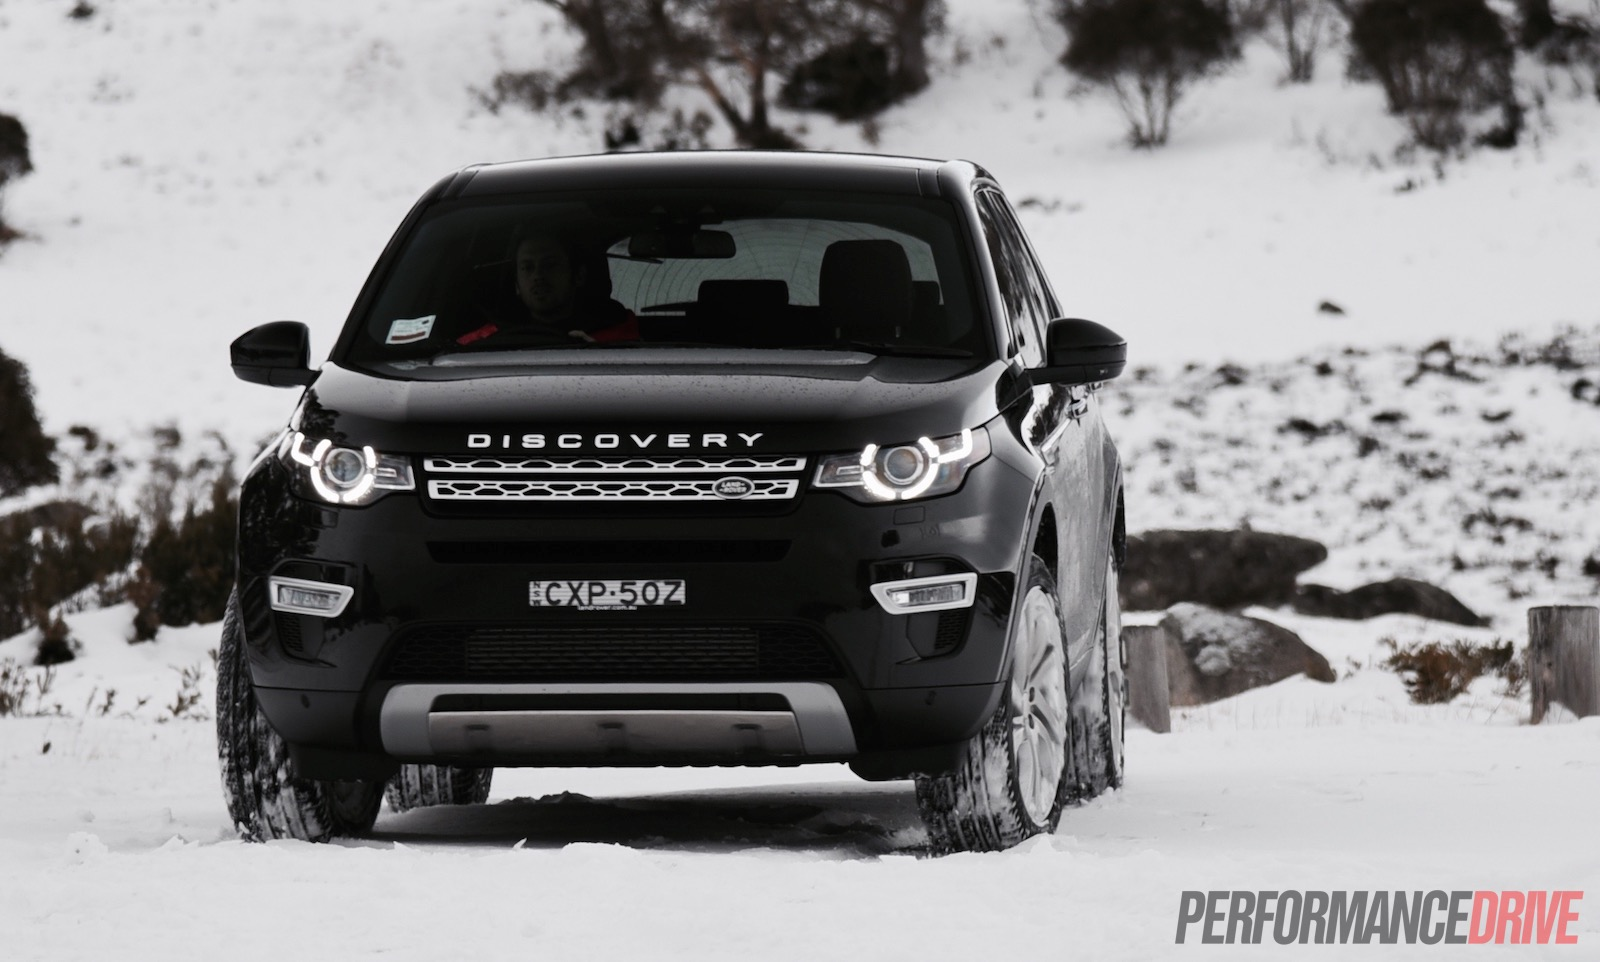 2015 Land Rover Discovery Sport Hse Headlights